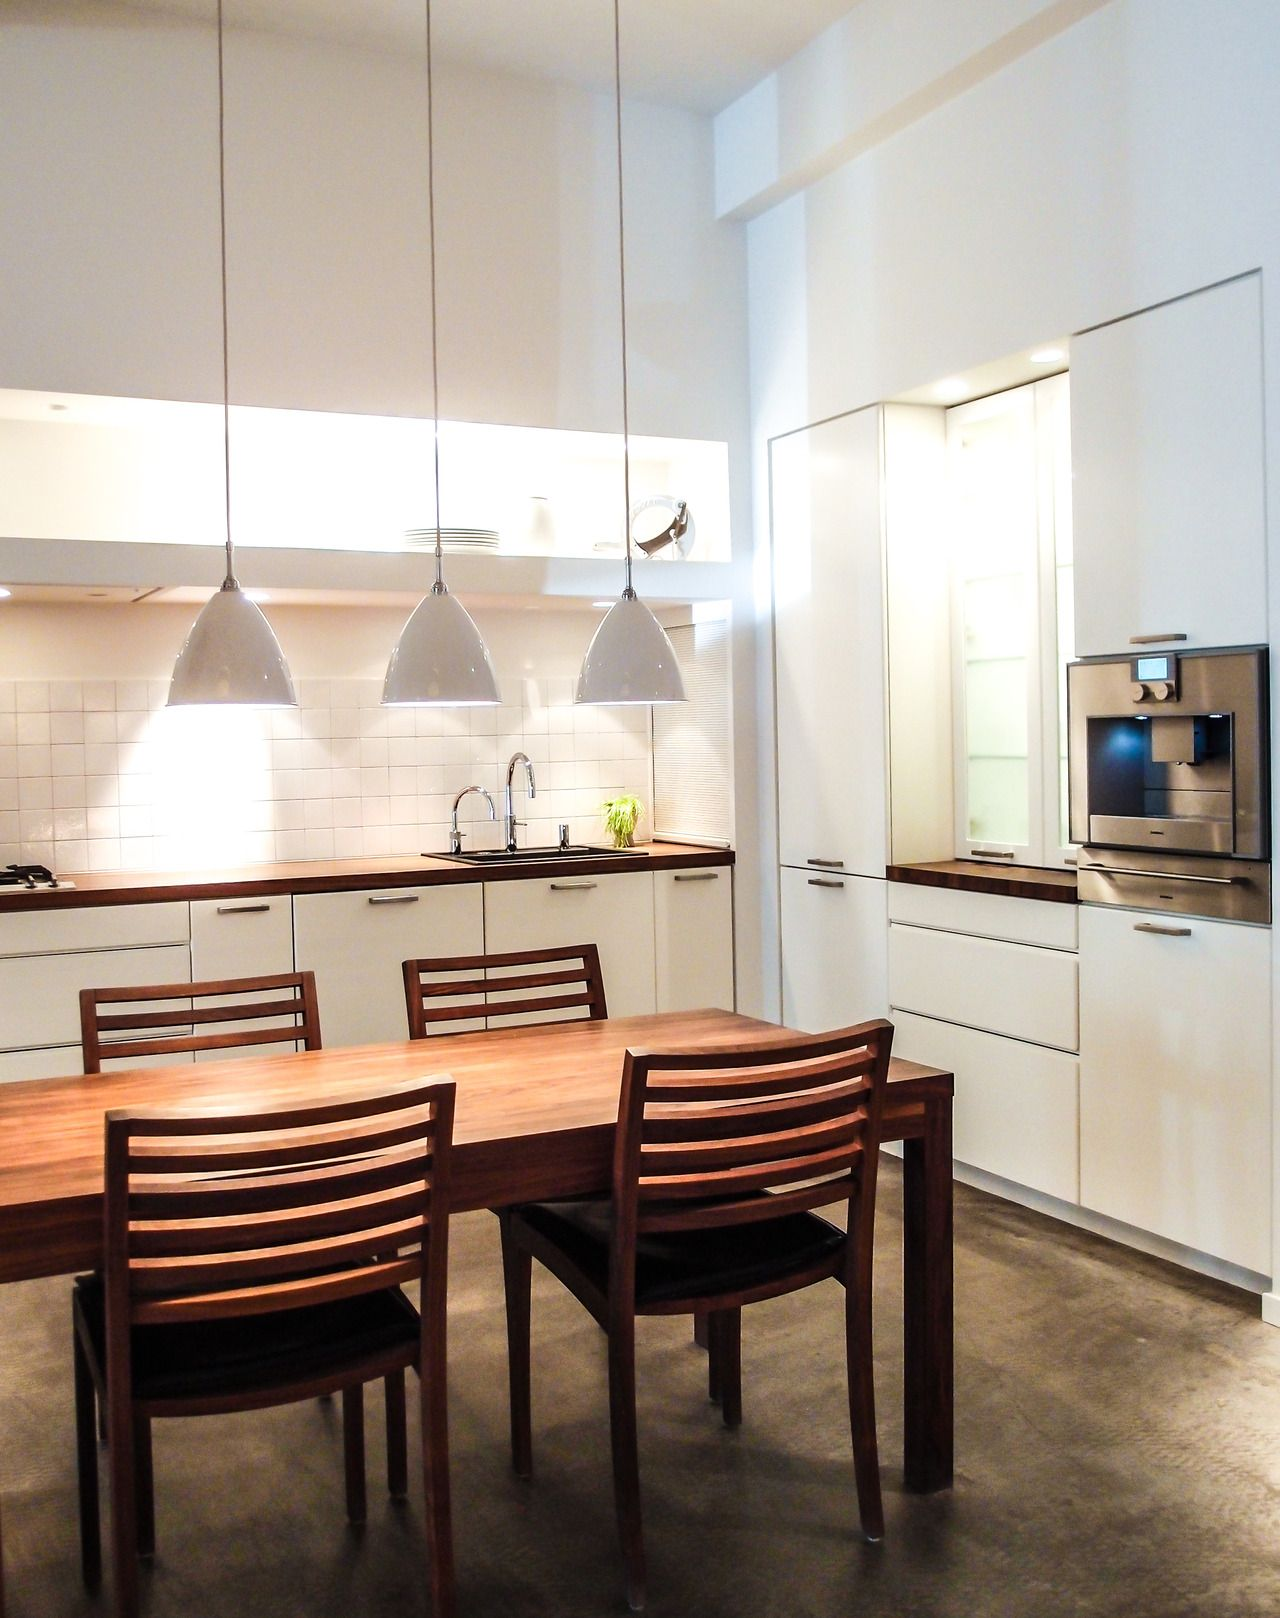 A White Kitchen In Multiform S Copenhagen Showroom The Elegant Dining Table And Chairs Add An